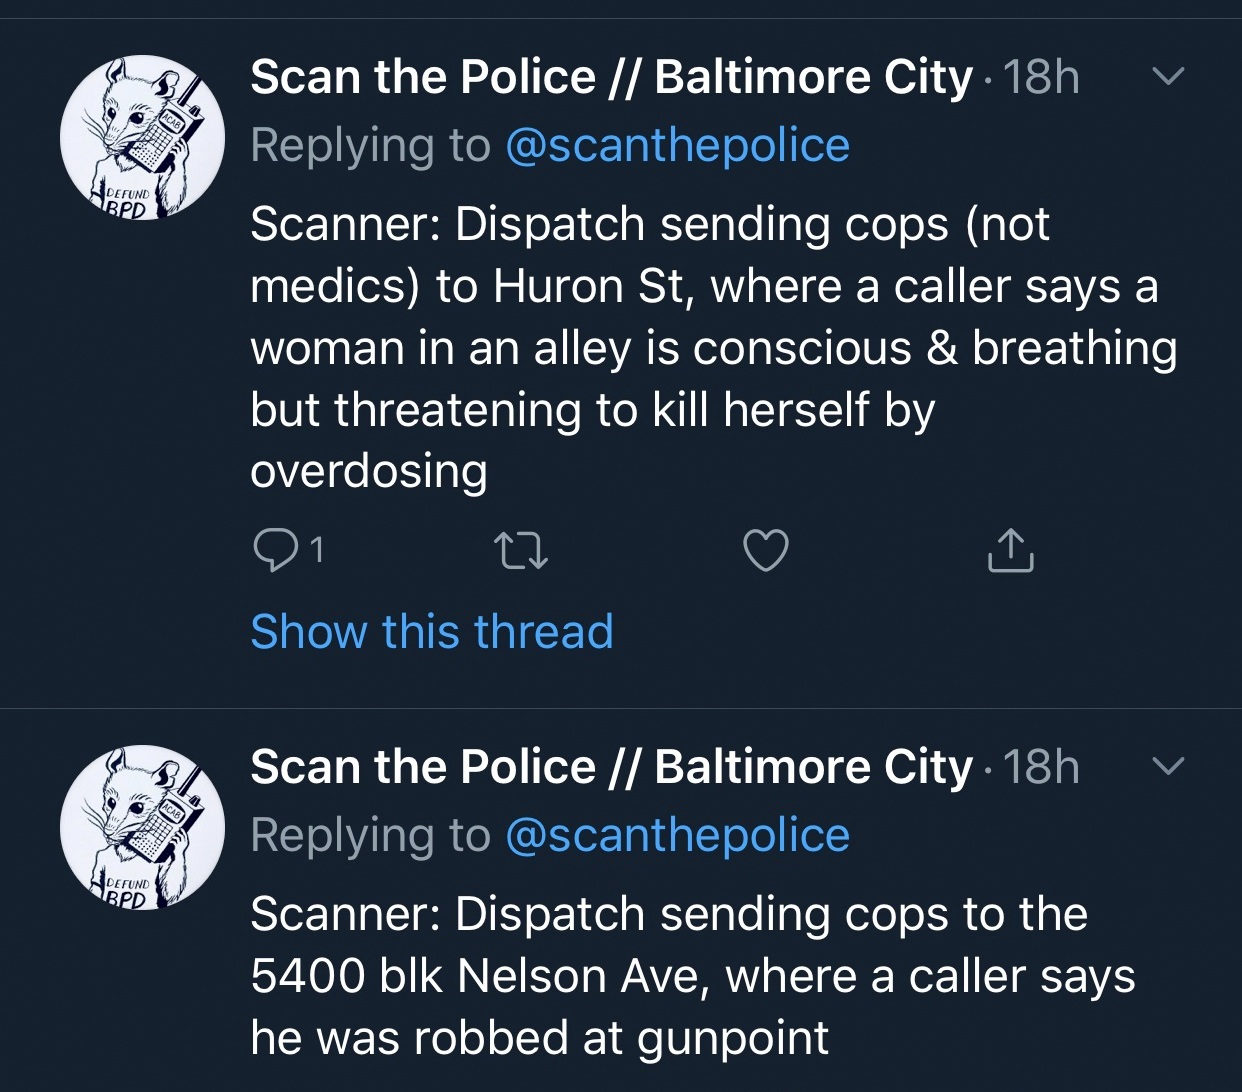 scan the police 7